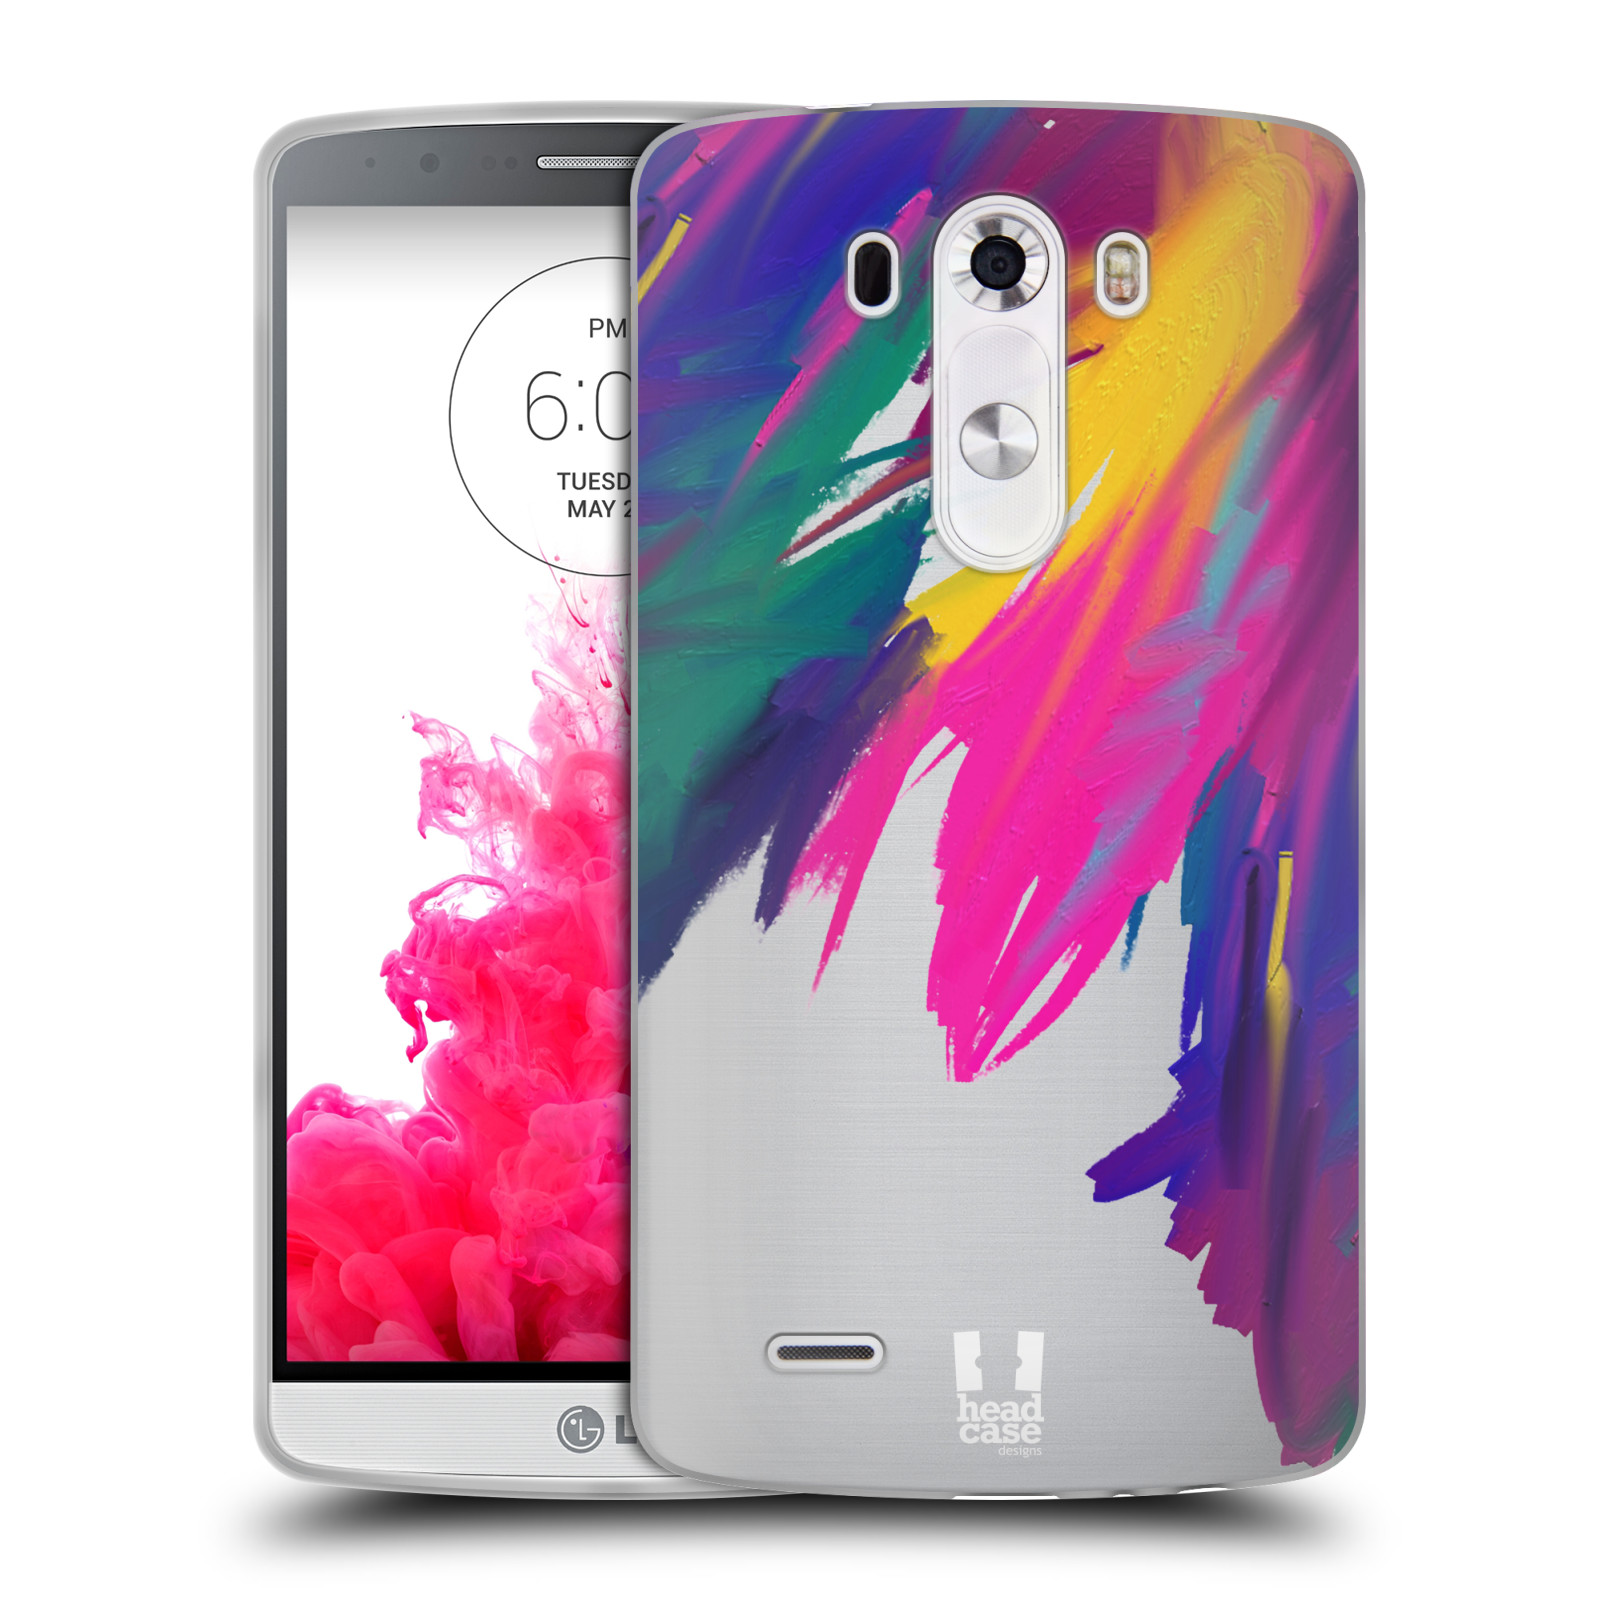 HEAD CASE DESIGNS COLOURFUL ABSTRACT SOFT GEL CASE FOR LG PHONES 1